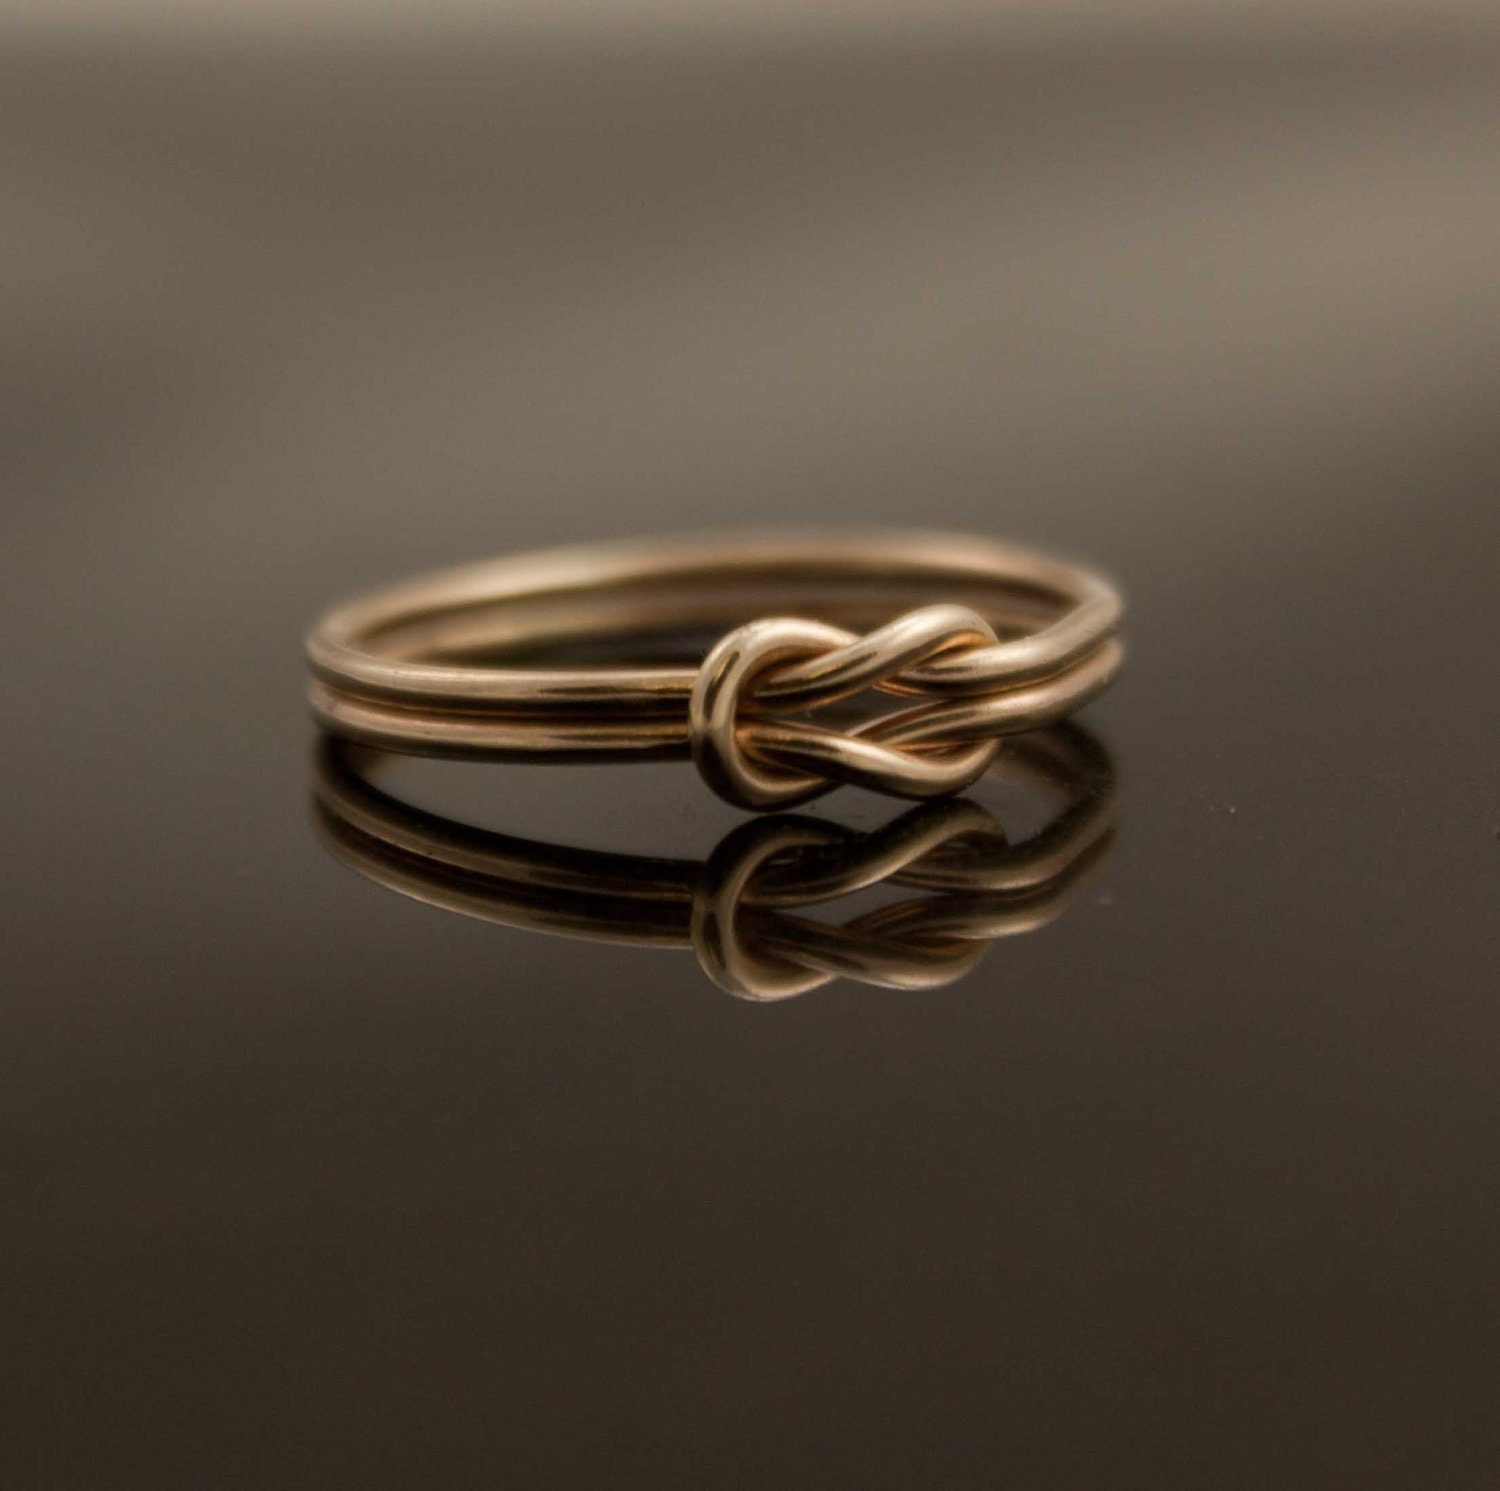 301 moved permanently With knot wedding ring